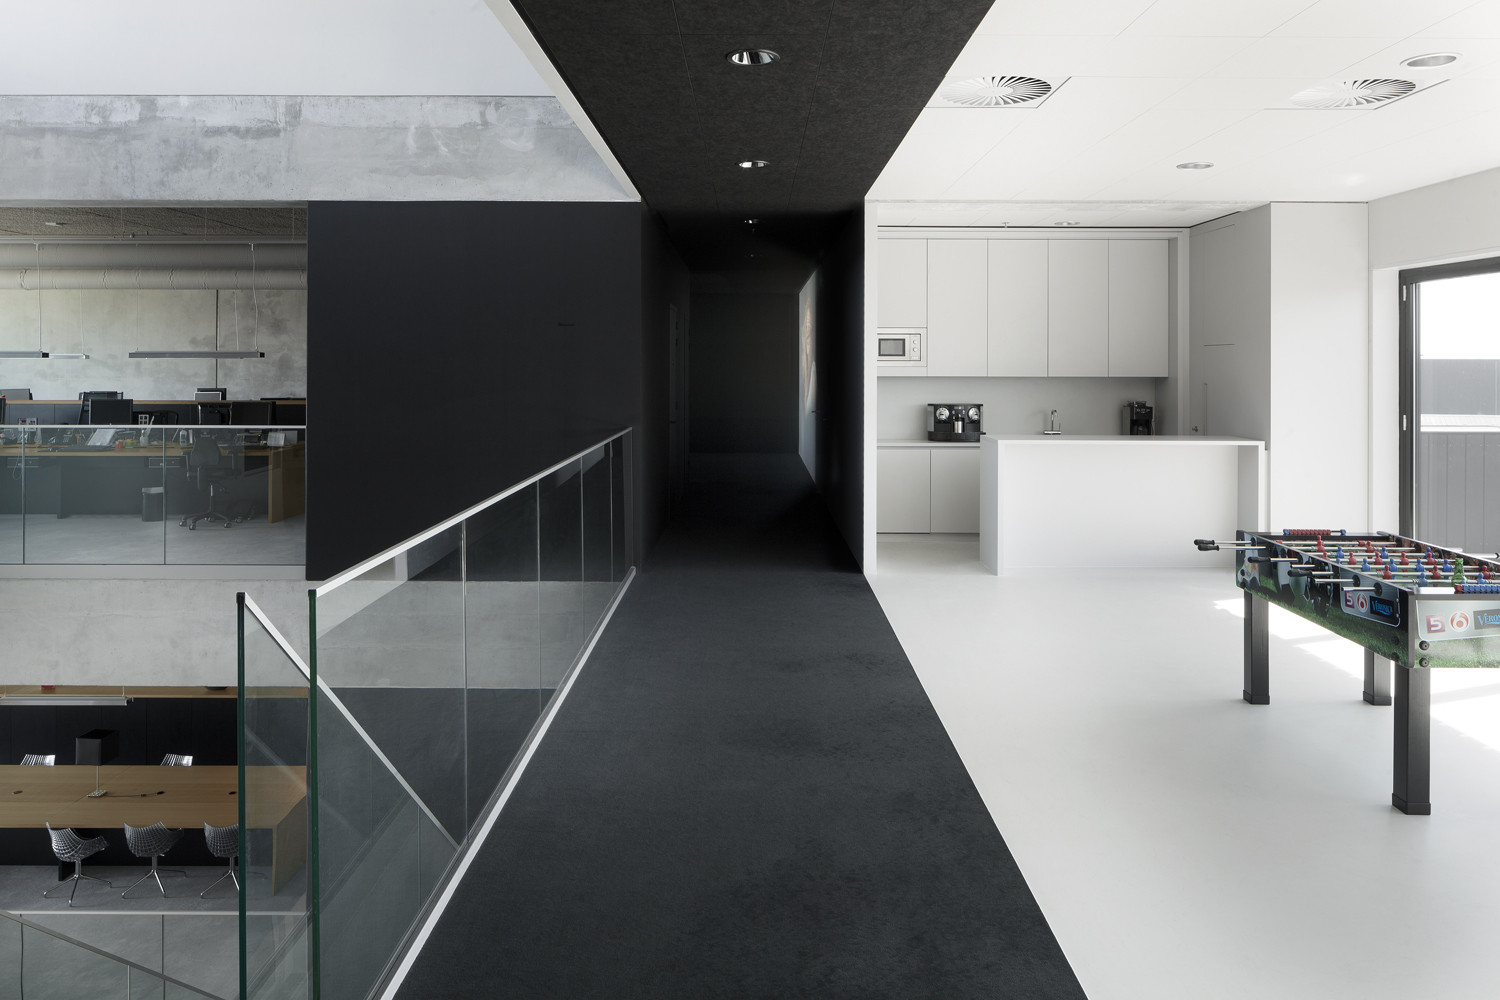 Gallery of office i interior architects vmx architects